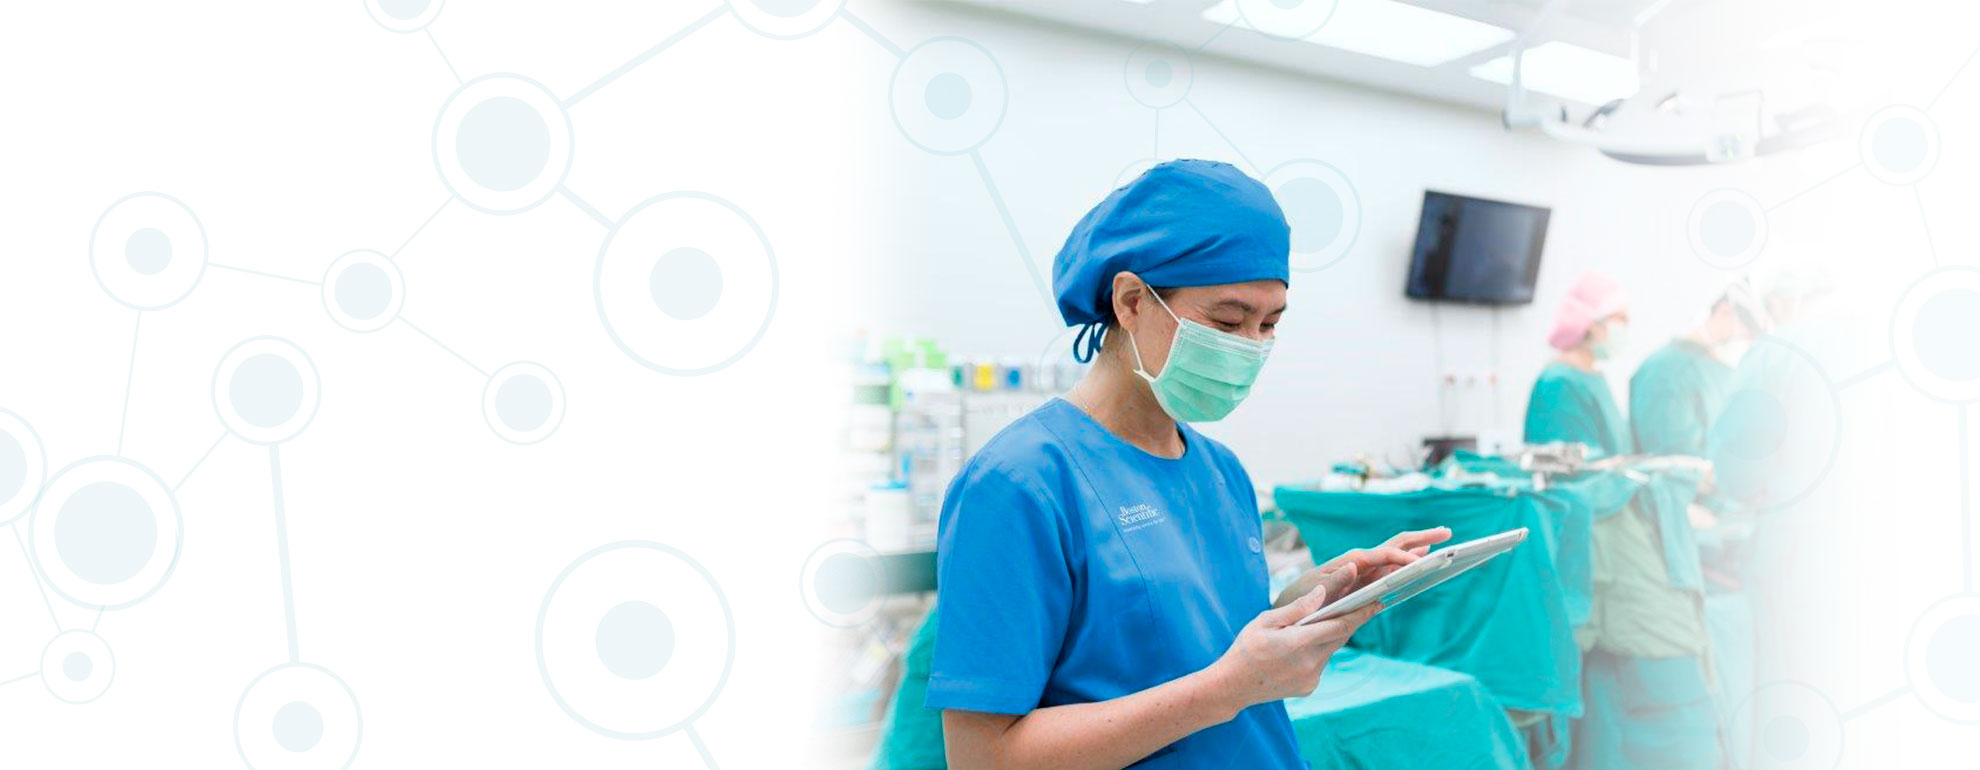 Improve Clinical Operations